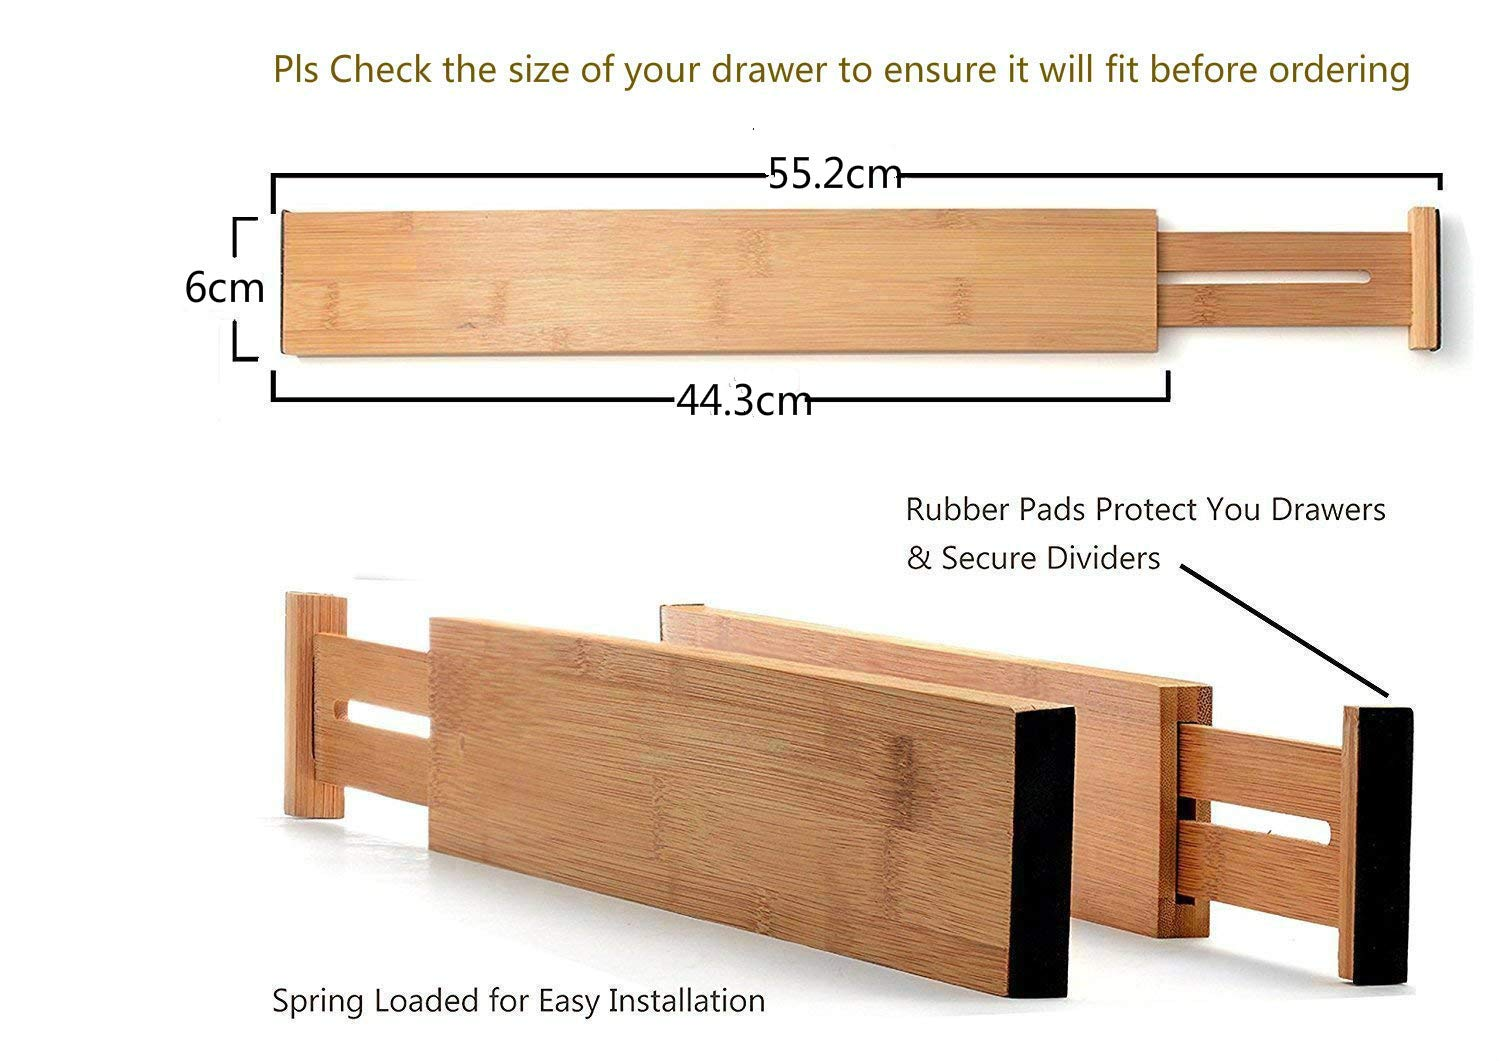 Bamboo Kitchen Drawer Organisers Expandable Drawer Divider Drawer Wooden Room Desk Drawer Organisers Compartment Drawer Organizer for Kitchen Office or Chest of Drawers Bathroom Baby Bedroom